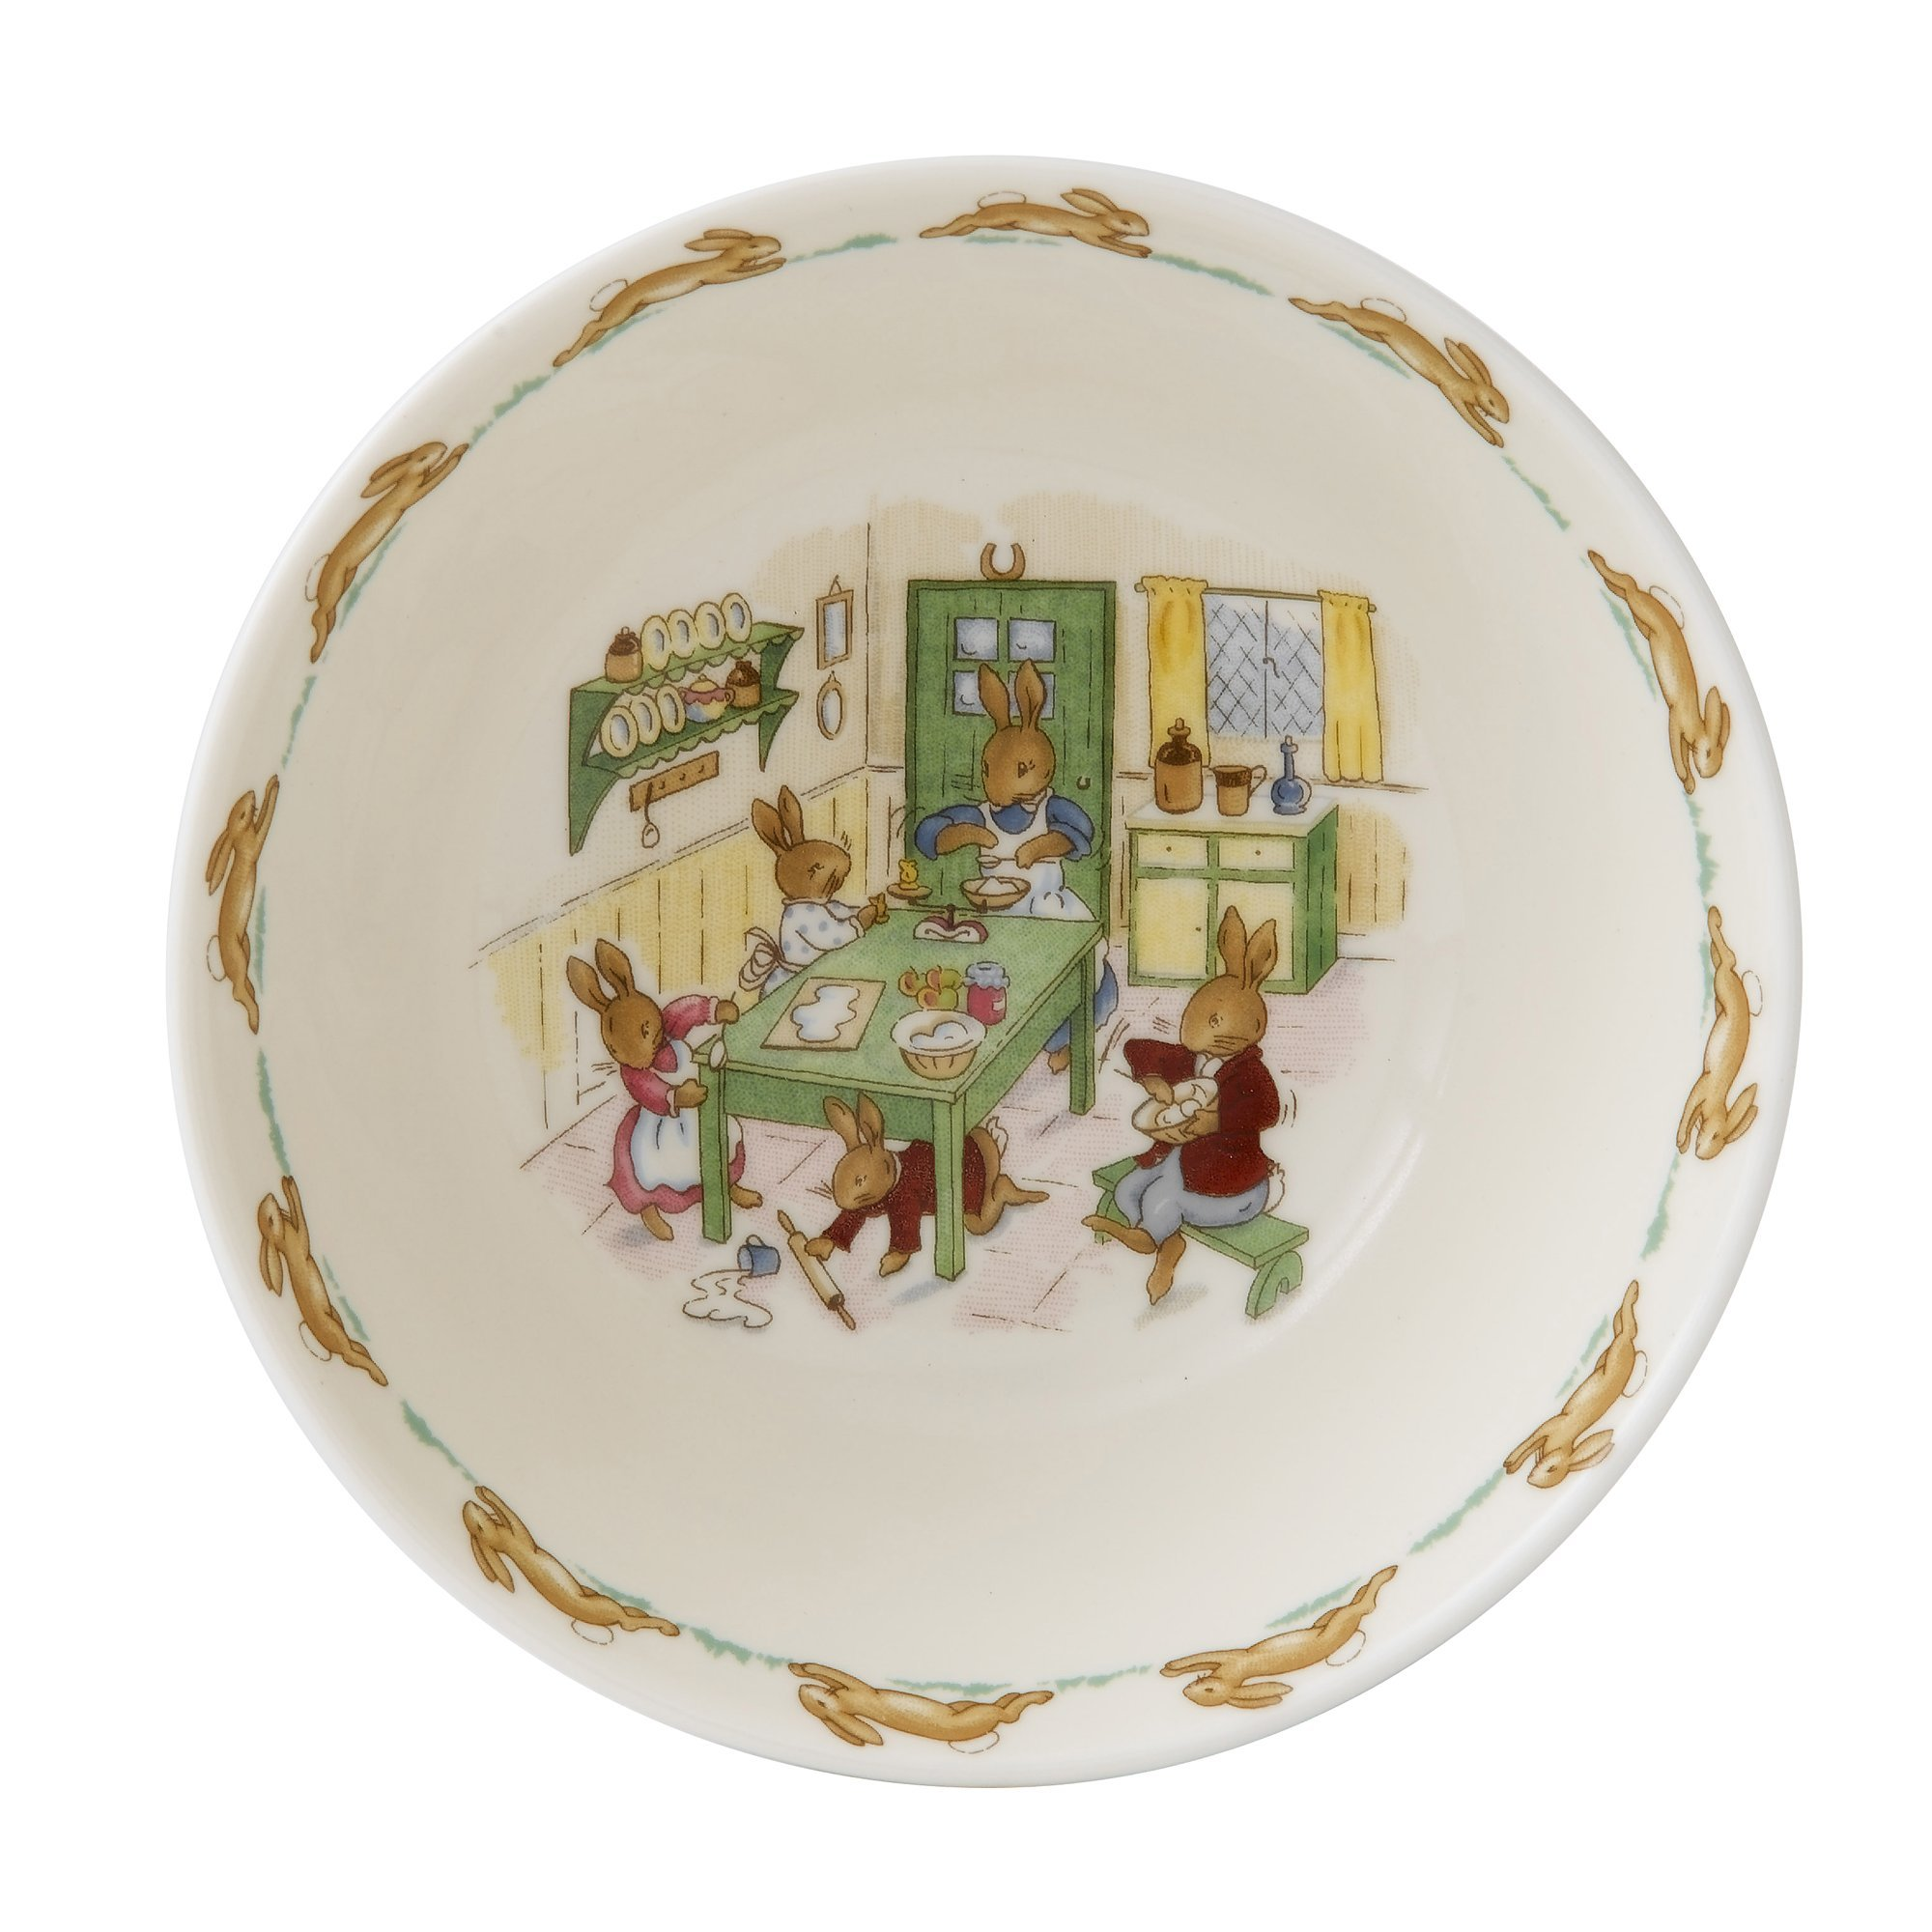 Royal Doulton Bunnykins Classic Nurseryware Cereal Bowl, Multicolored